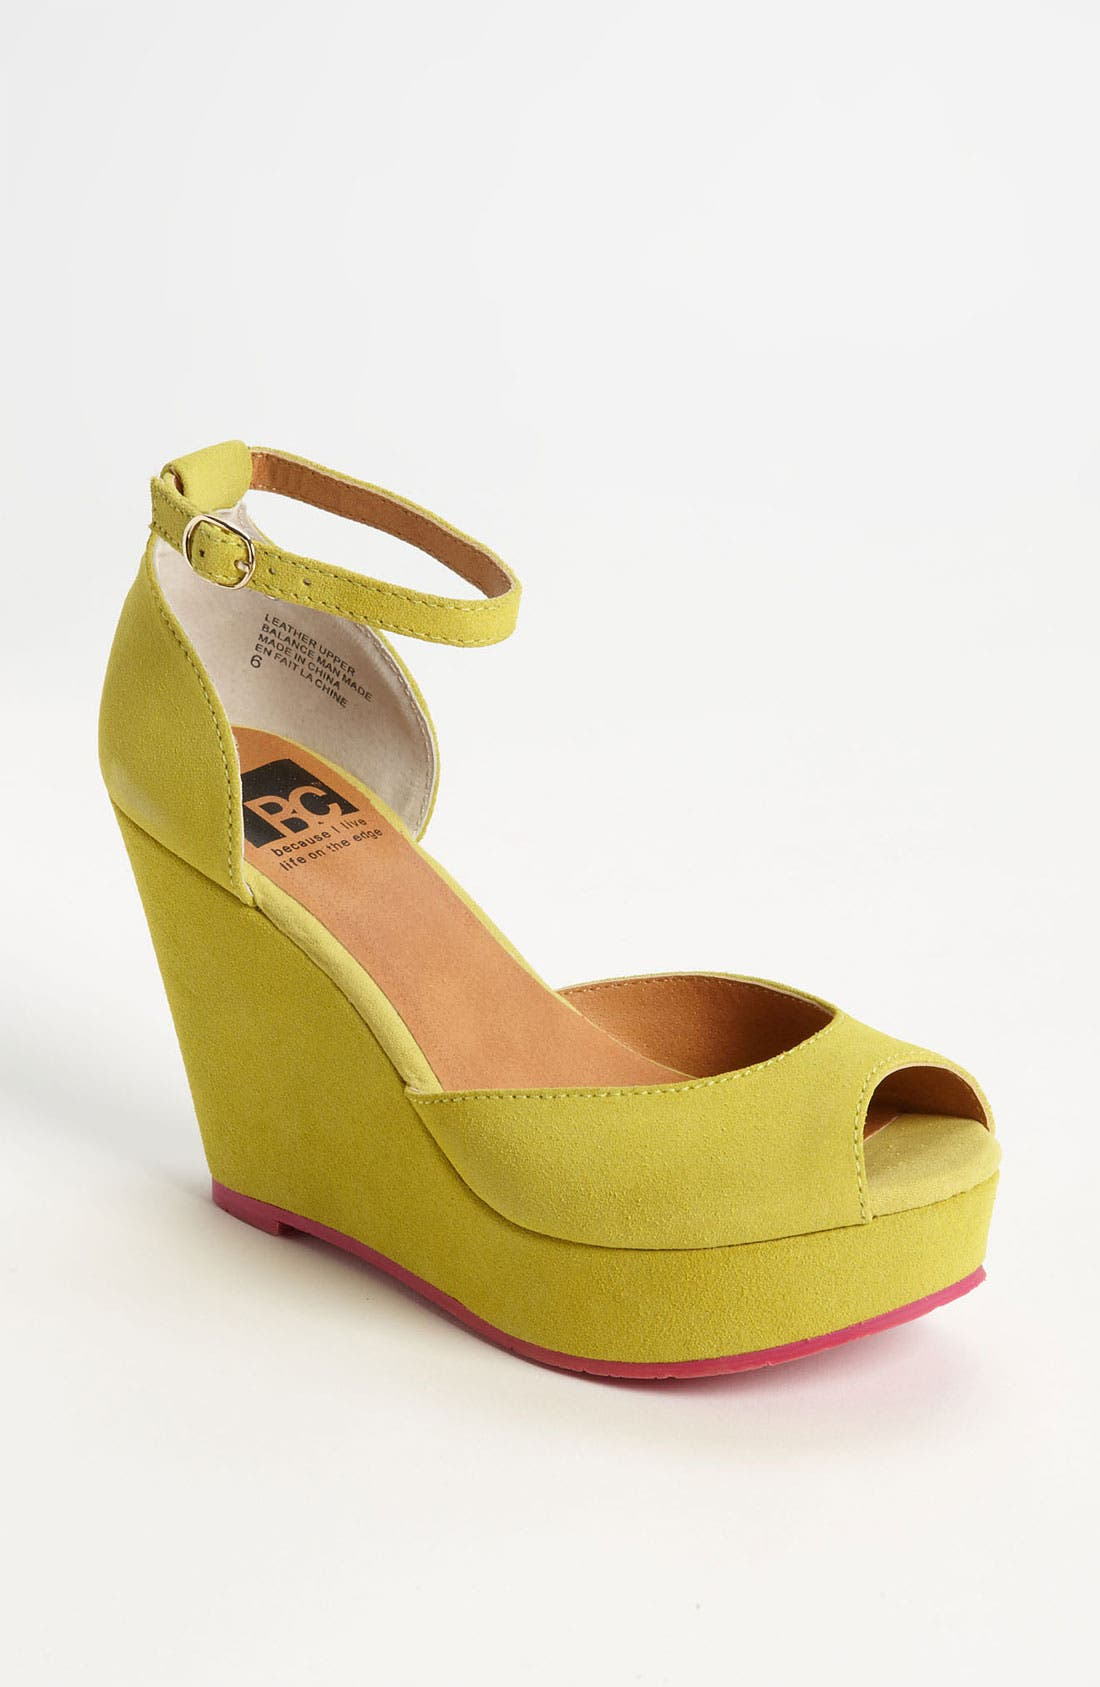 Main Image - BC Footwear 'Bright Idea' Wedge Sandal